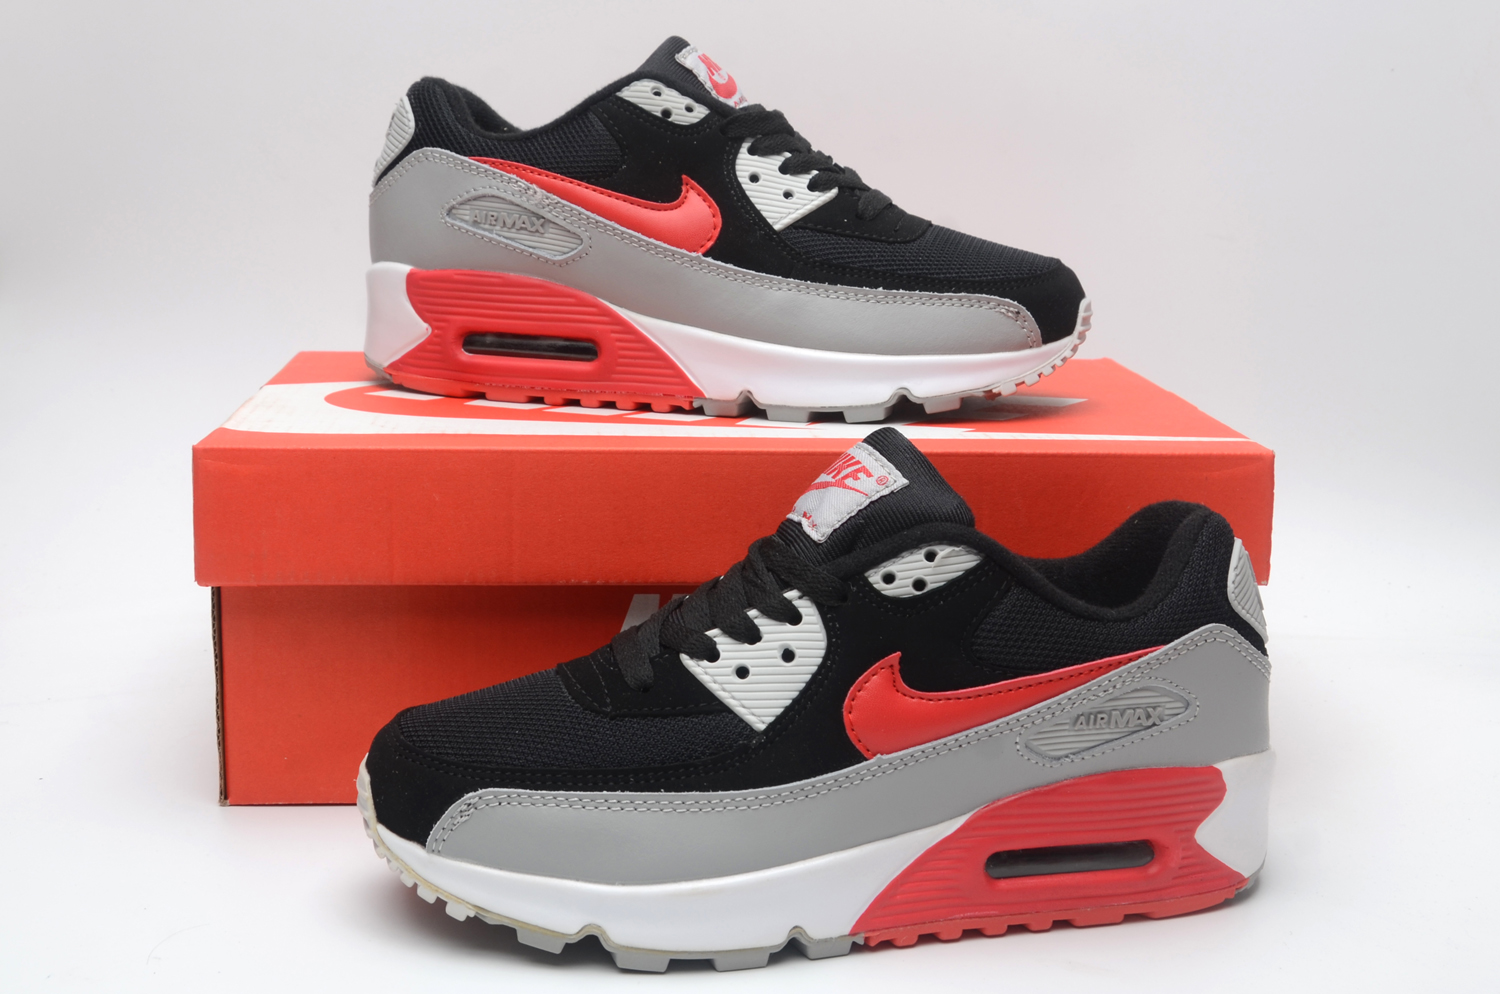 Women's Running weapon Air Max 90 Shoes 037